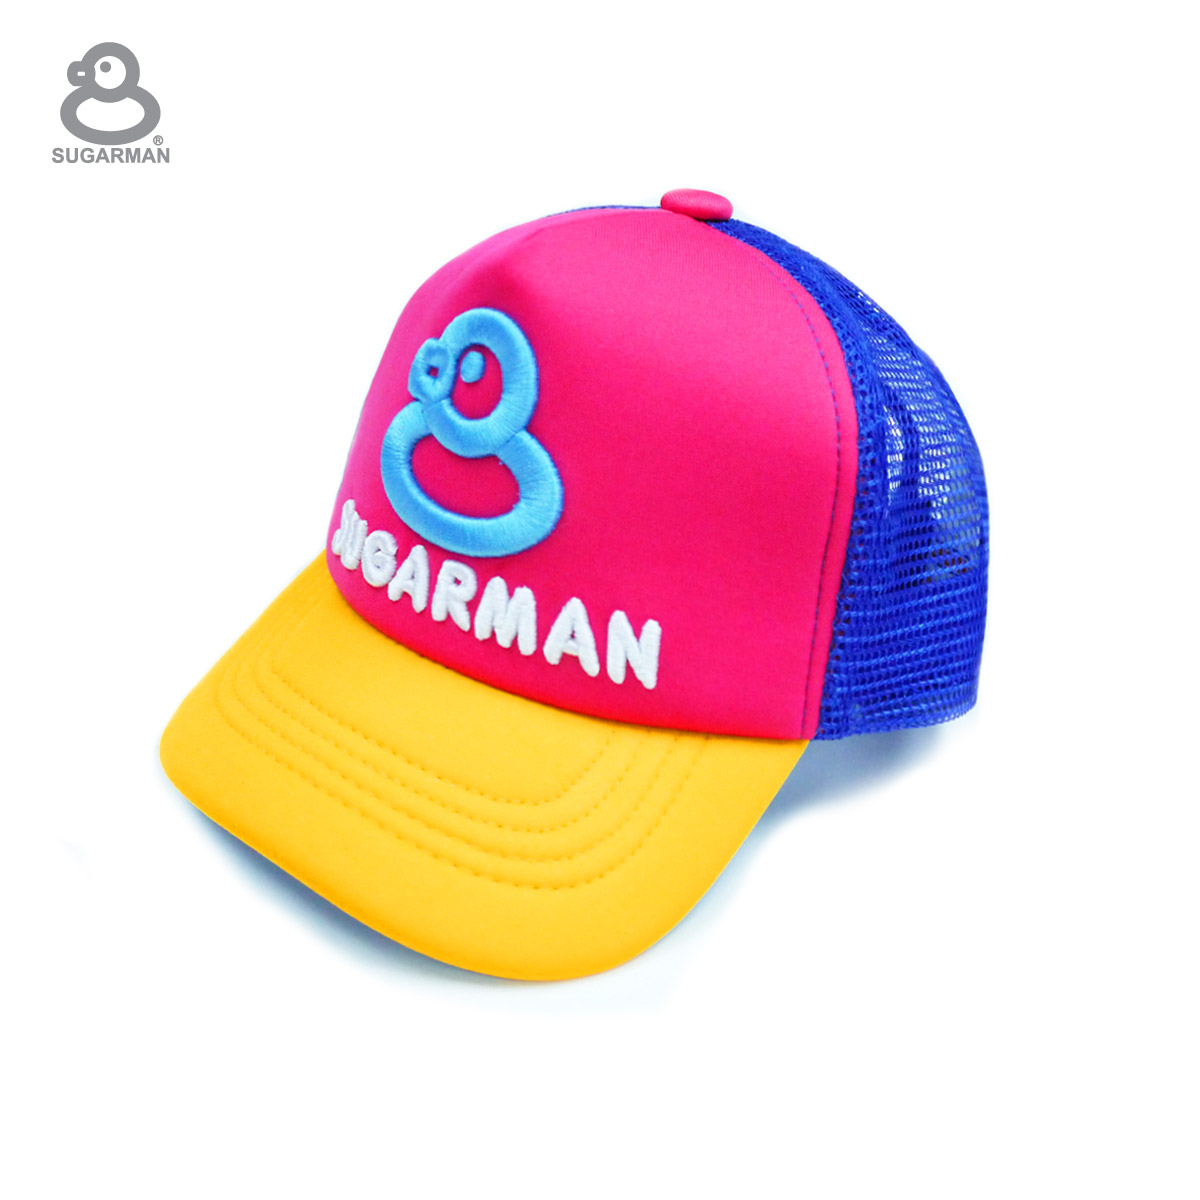 Tide brand sugarman overseas flagship store adult paternity cap baseball cap hat lovers cap tide models